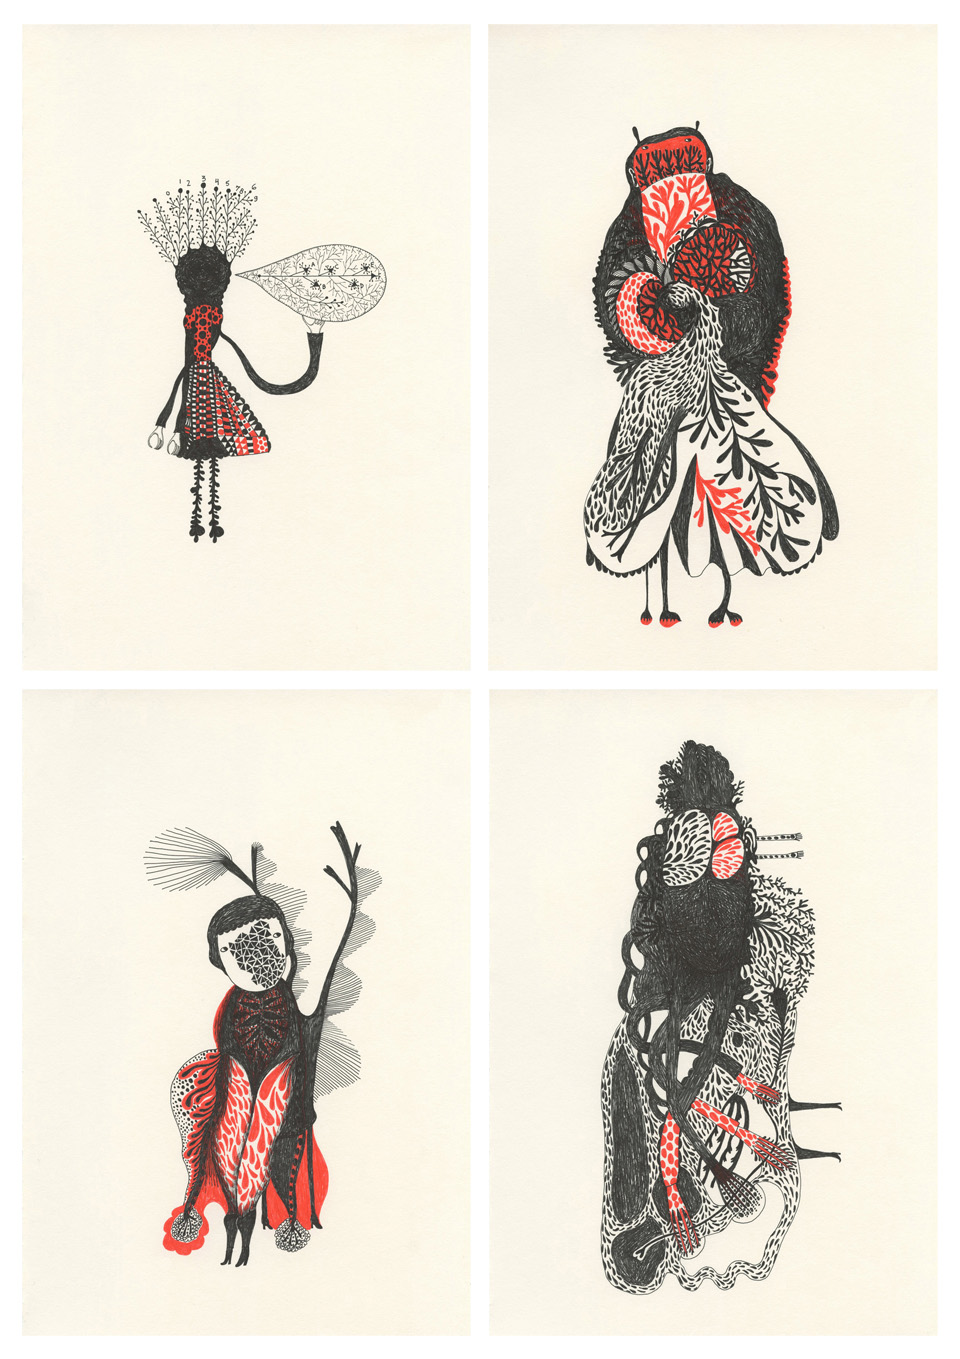 4 drawings Drawings in Black and Red